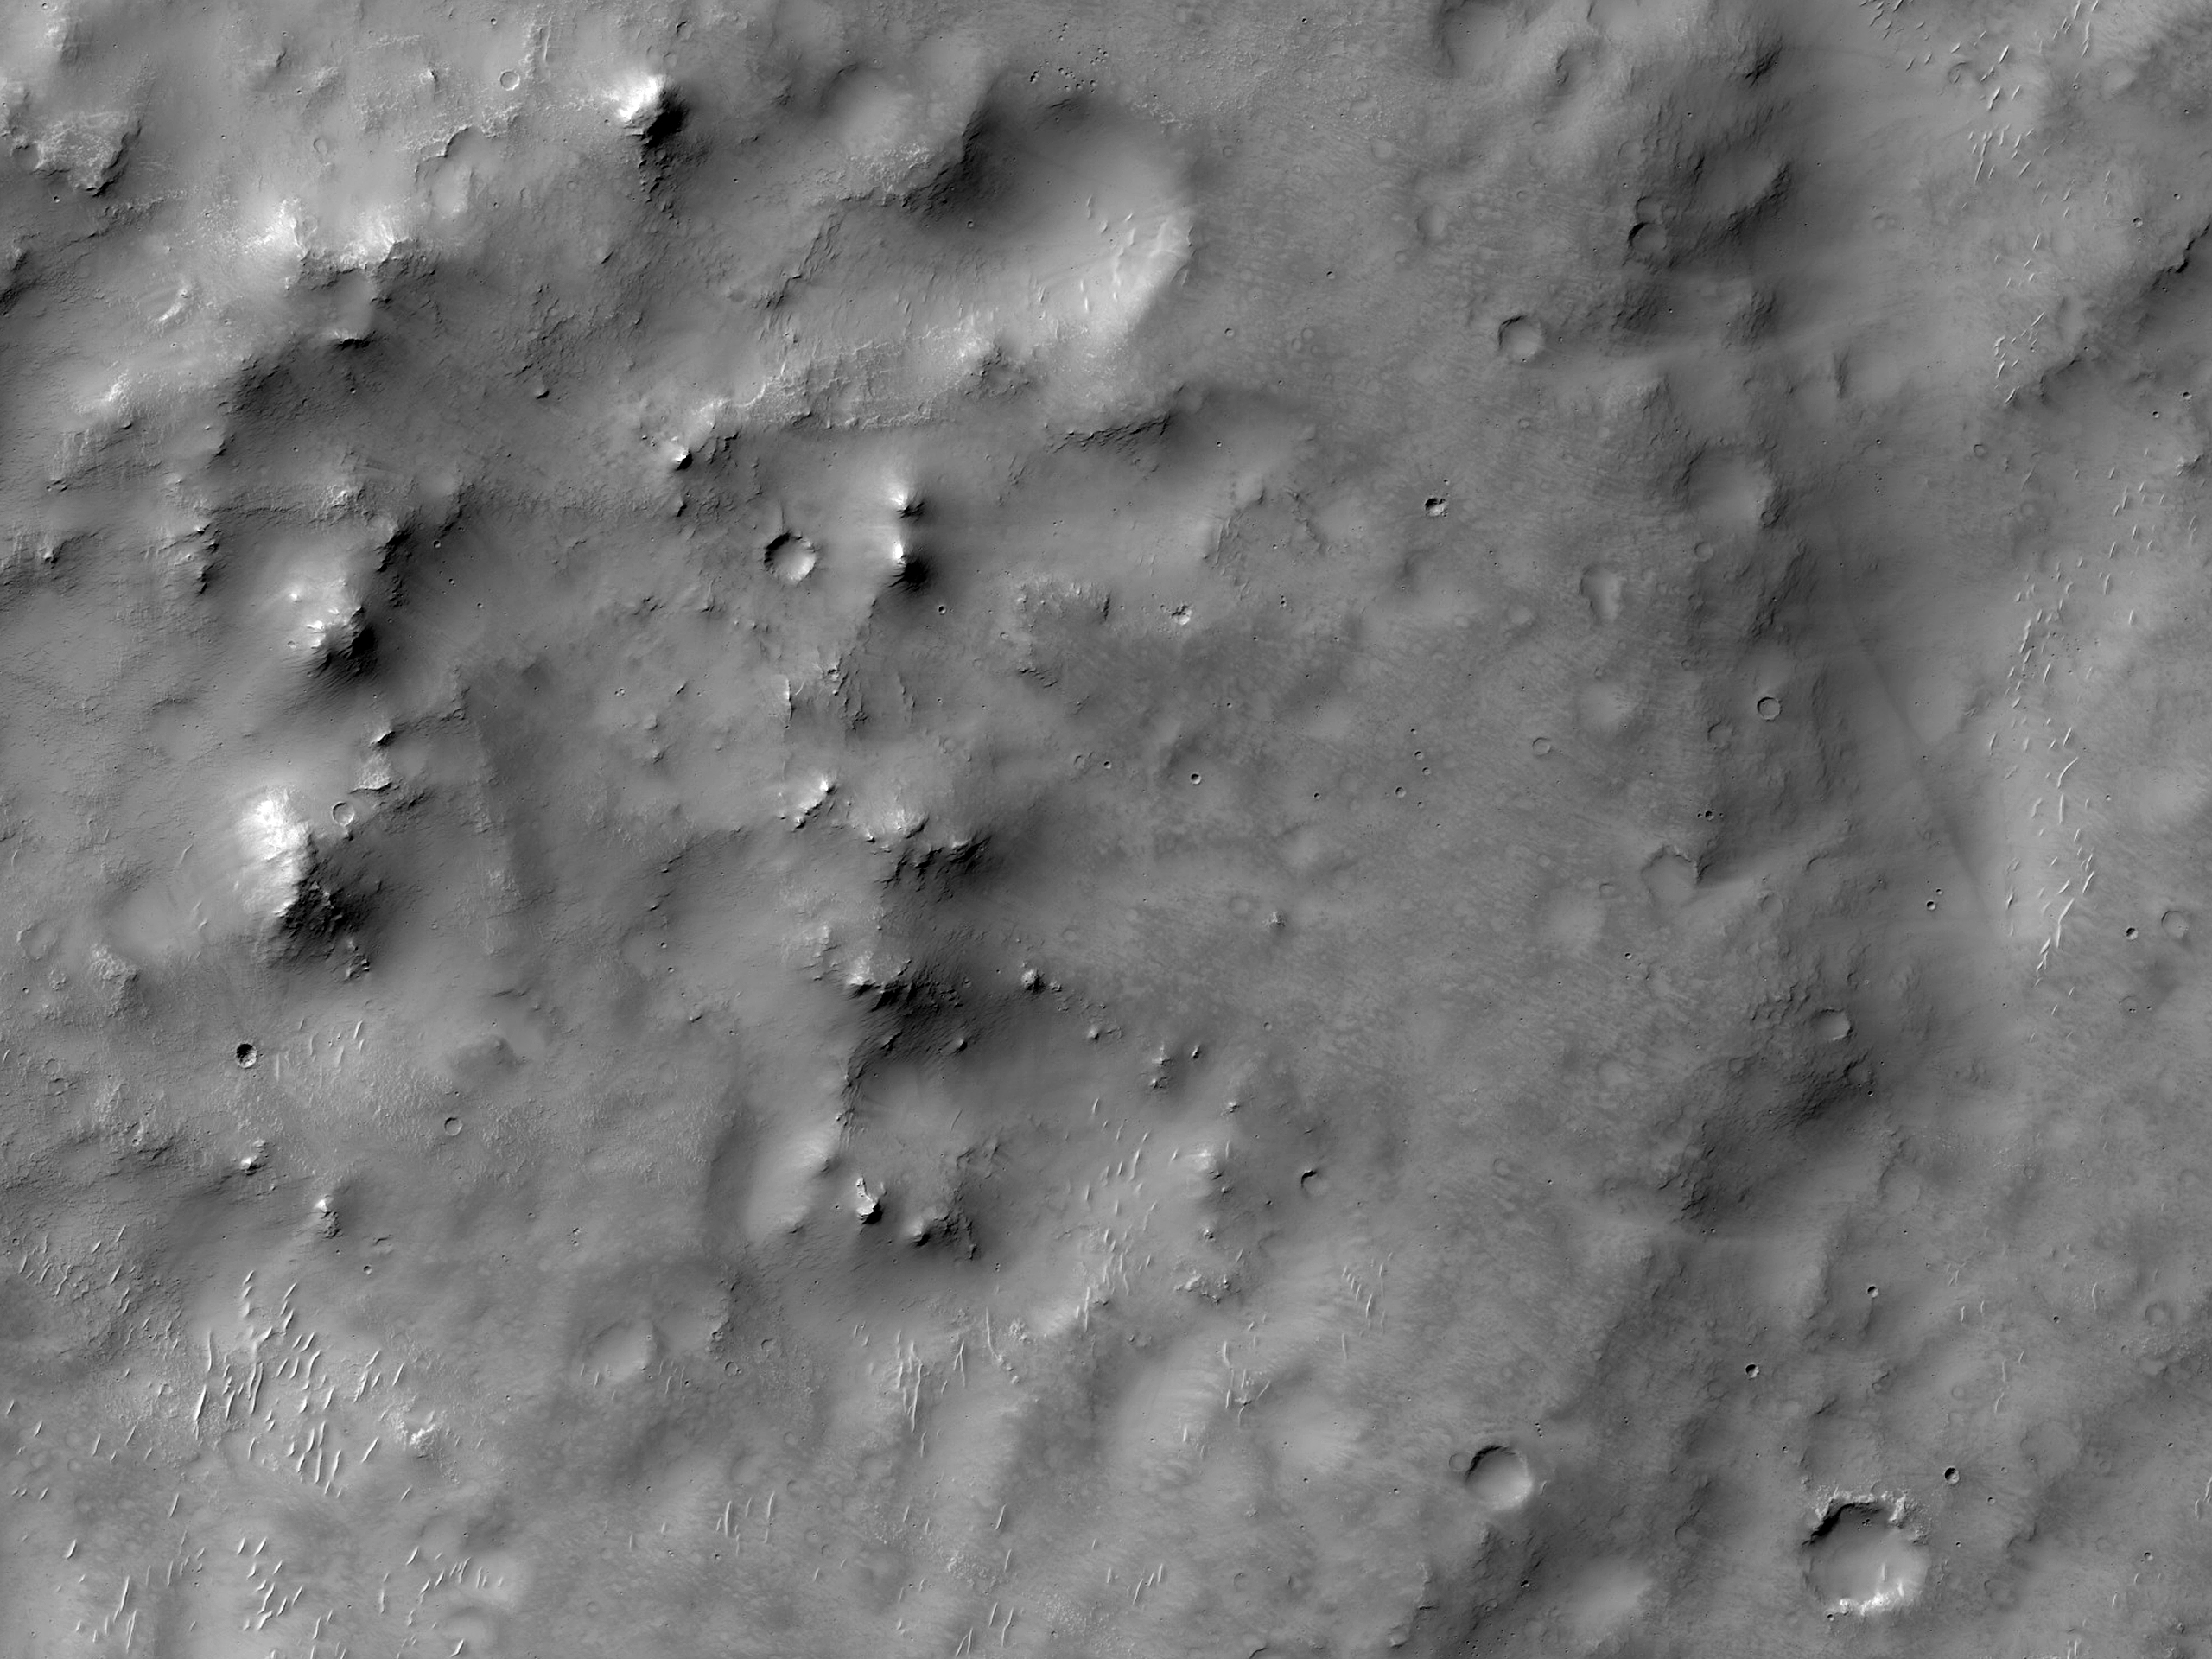 Bakhuysen Crater Ejecta Mounds